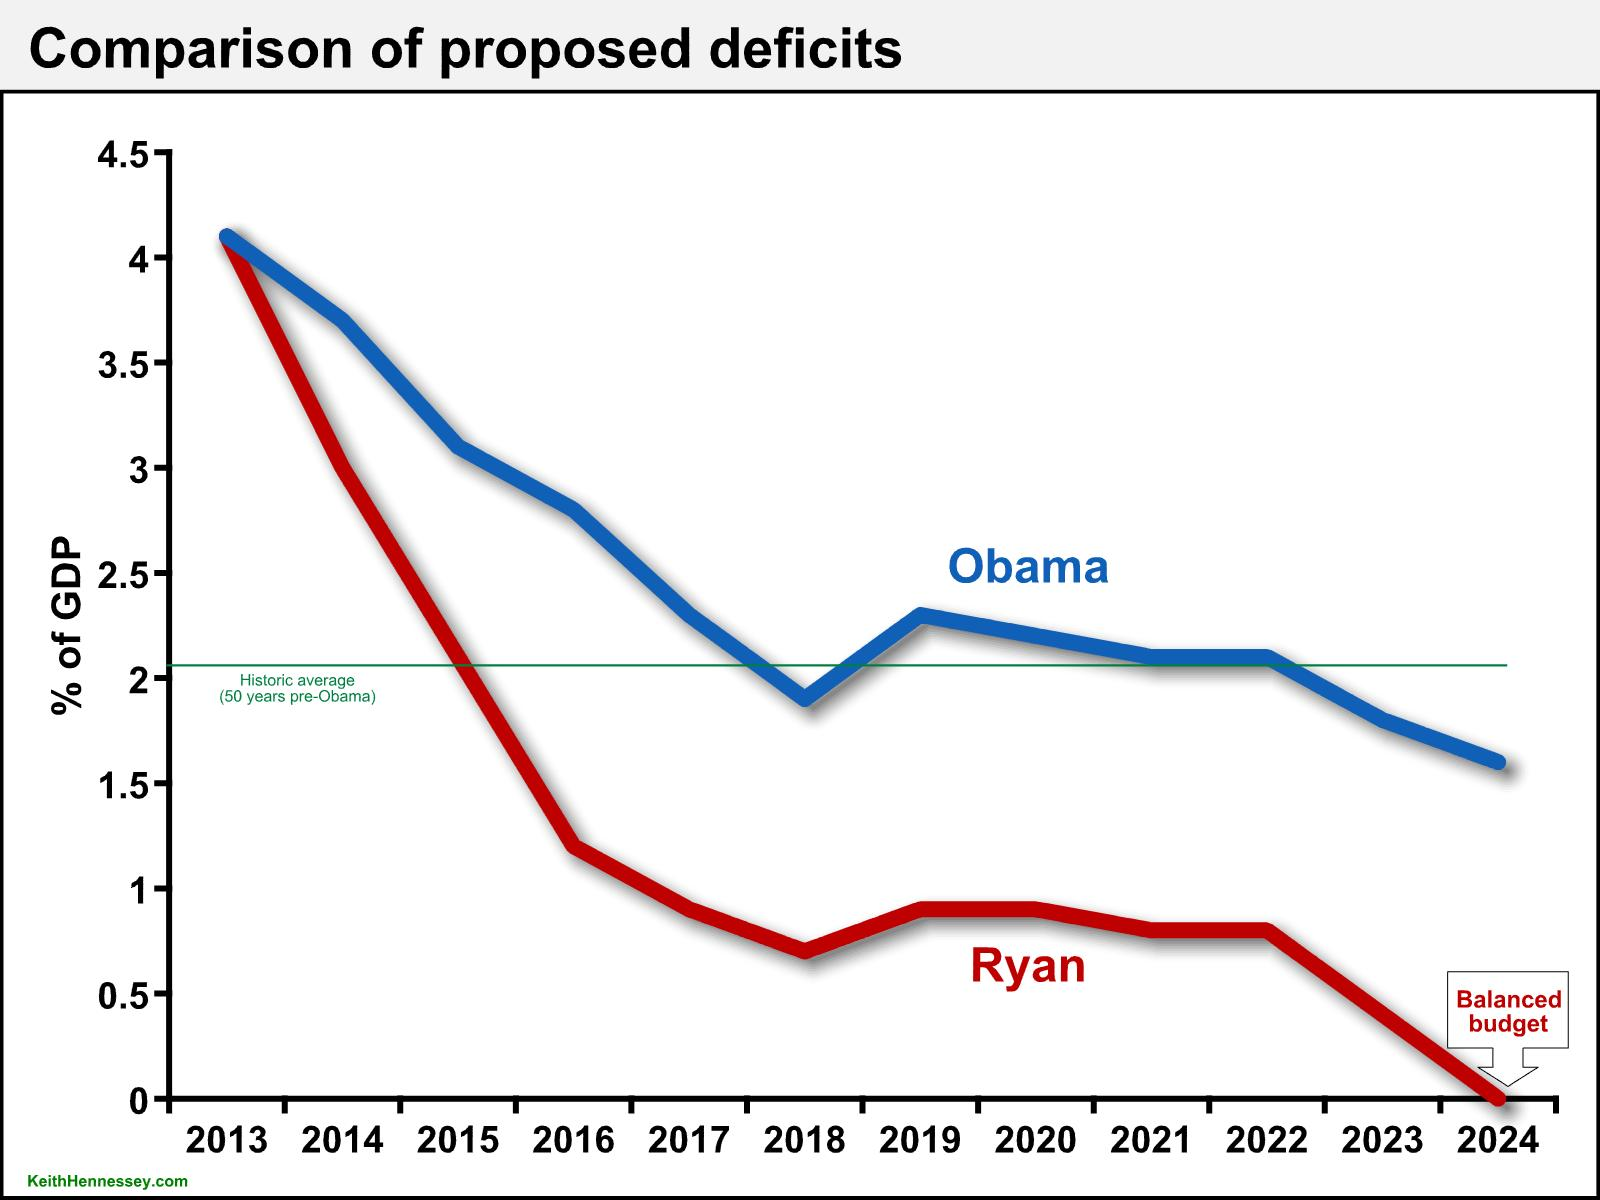 ryan v obama short-term deficits (apr 2014)